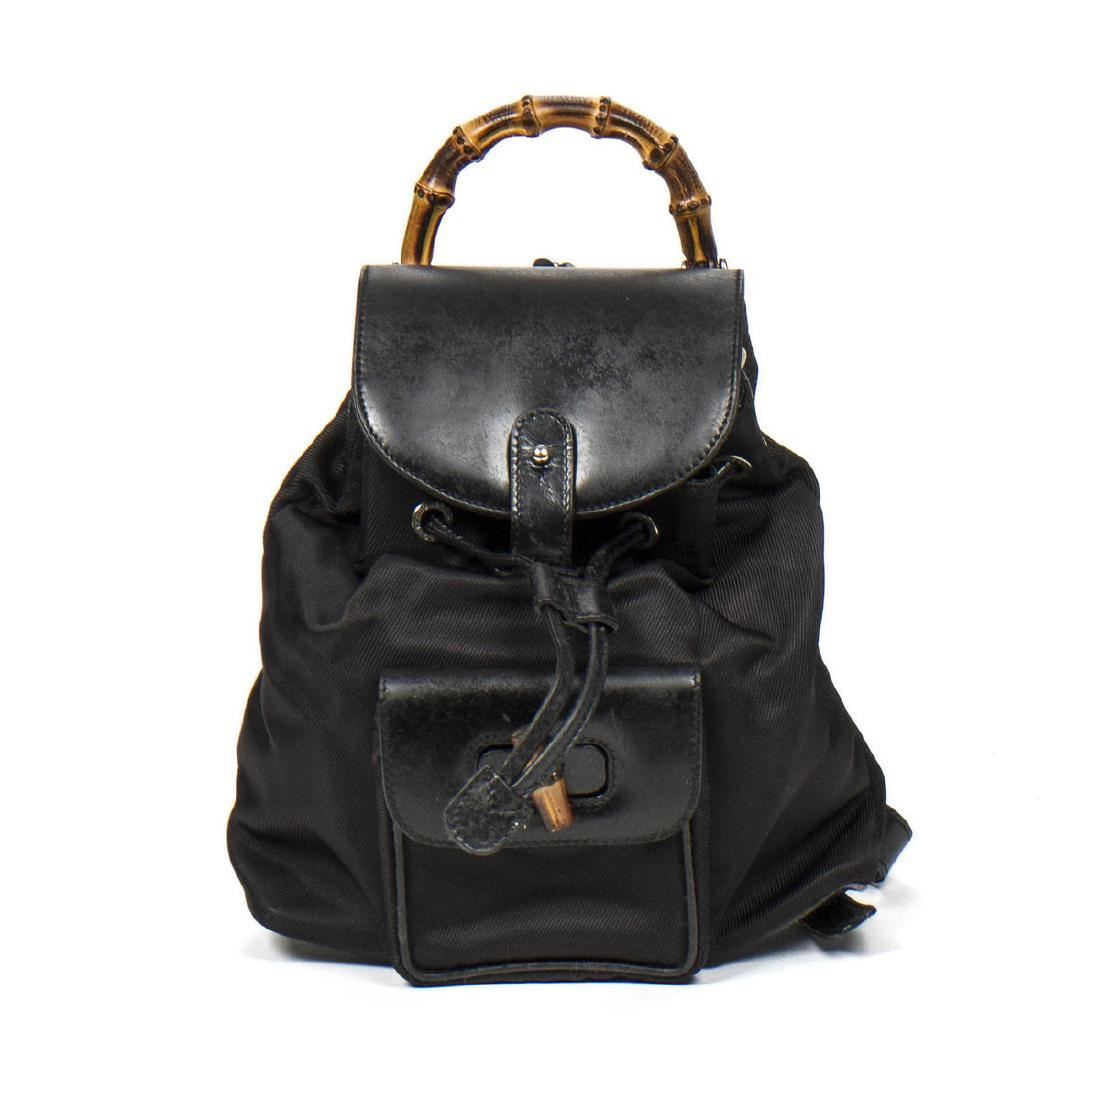 8f867bba8 Image 1 : GUCCI Bamboo Backpack in Black Nylon Canvas/Smooth ...